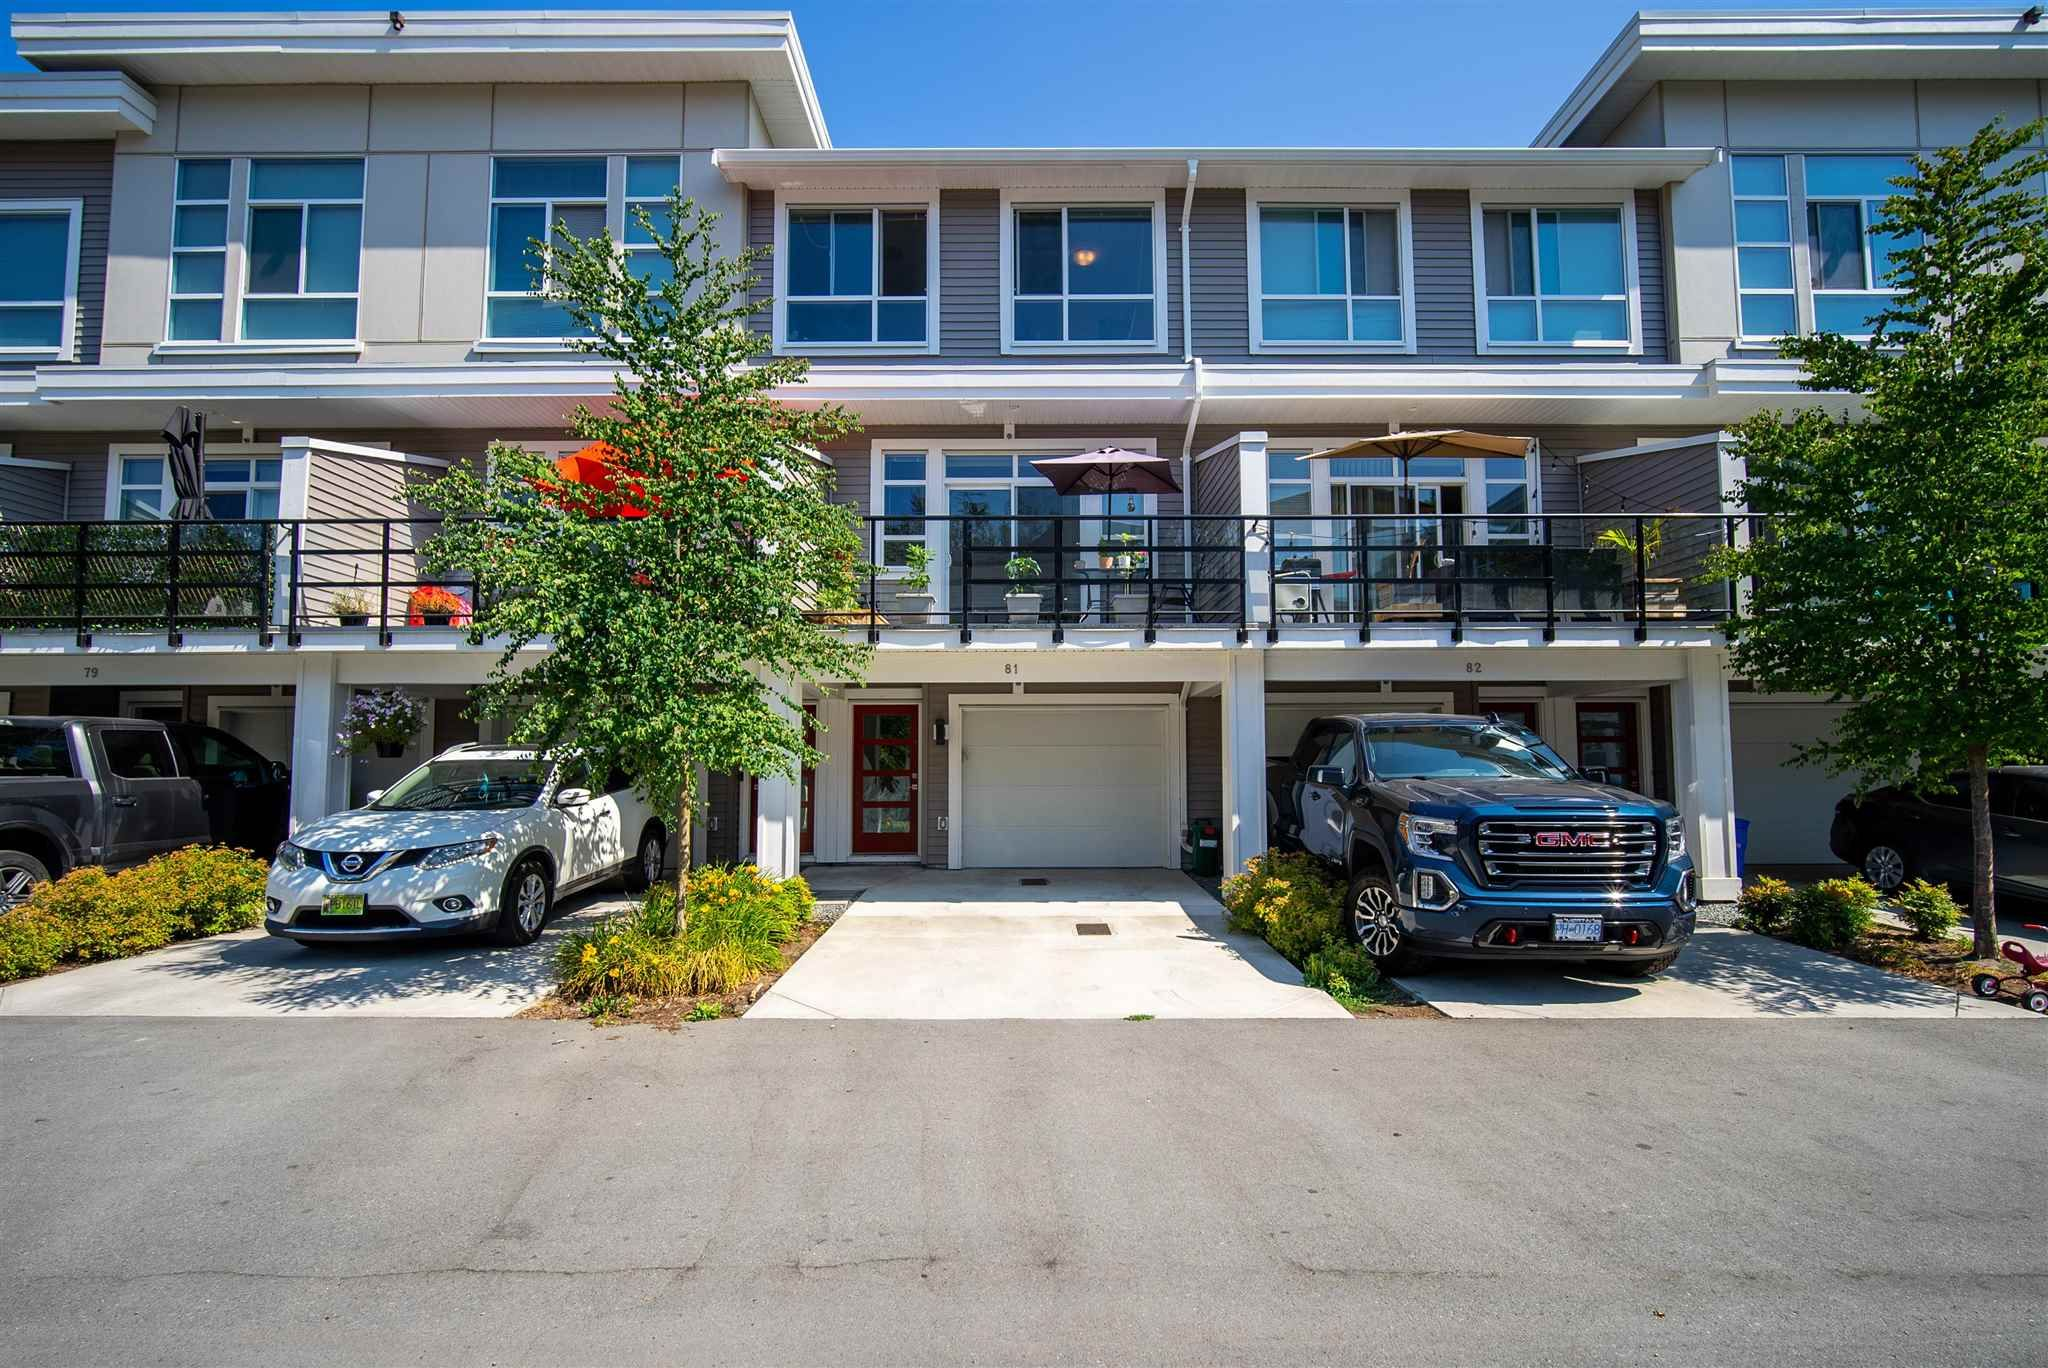 Main Photo: 81 8413 MIDTOWN Way in Chilliwack: Chilliwack W Young-Well Townhouse for sale : MLS®# R2599814